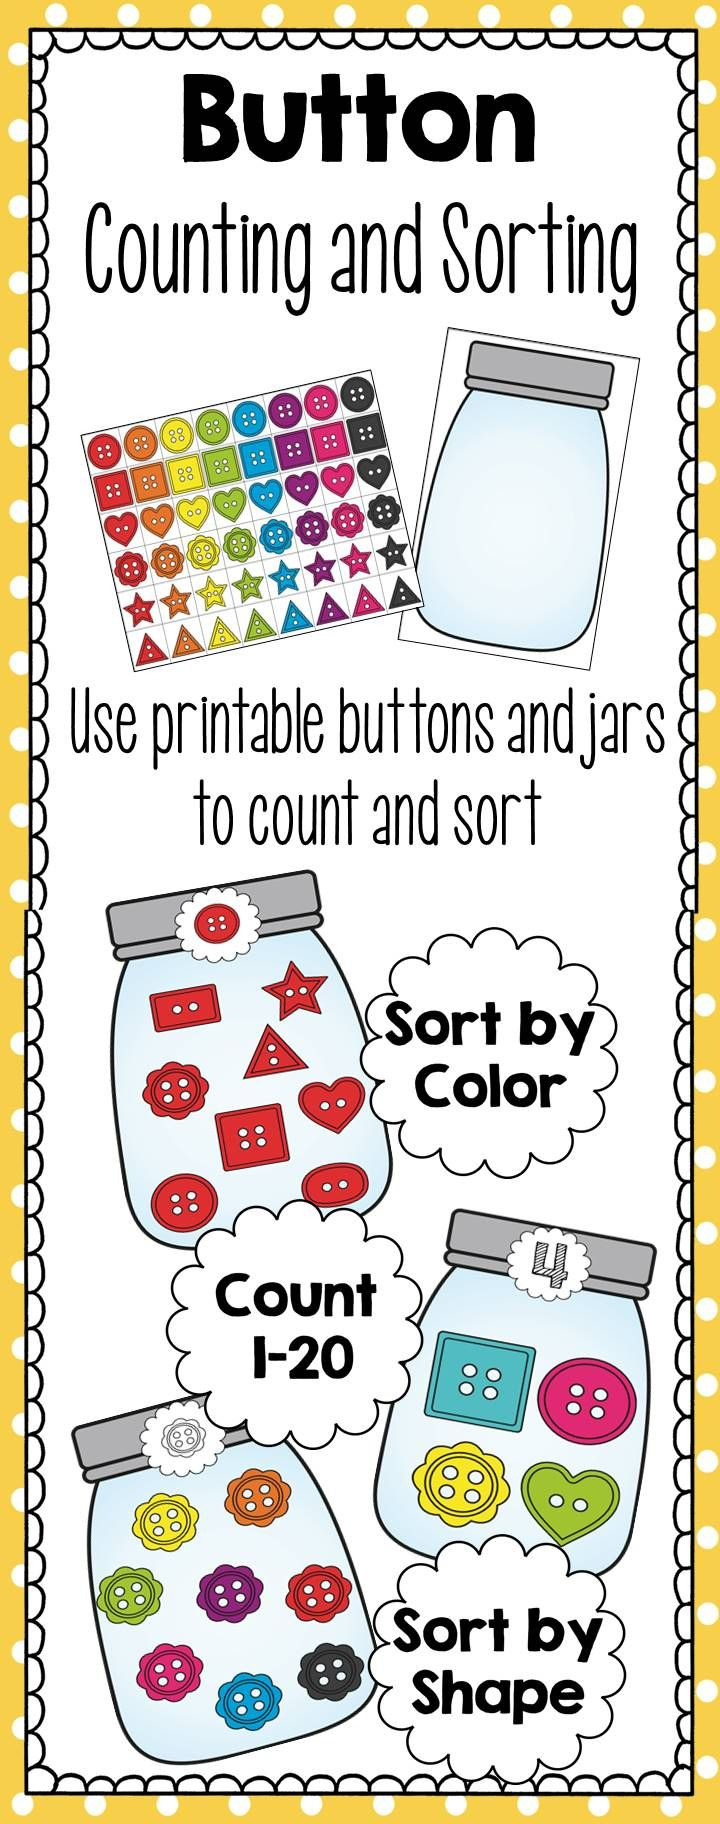 Counting and Sorting Button Jars (CCSS Aligned)